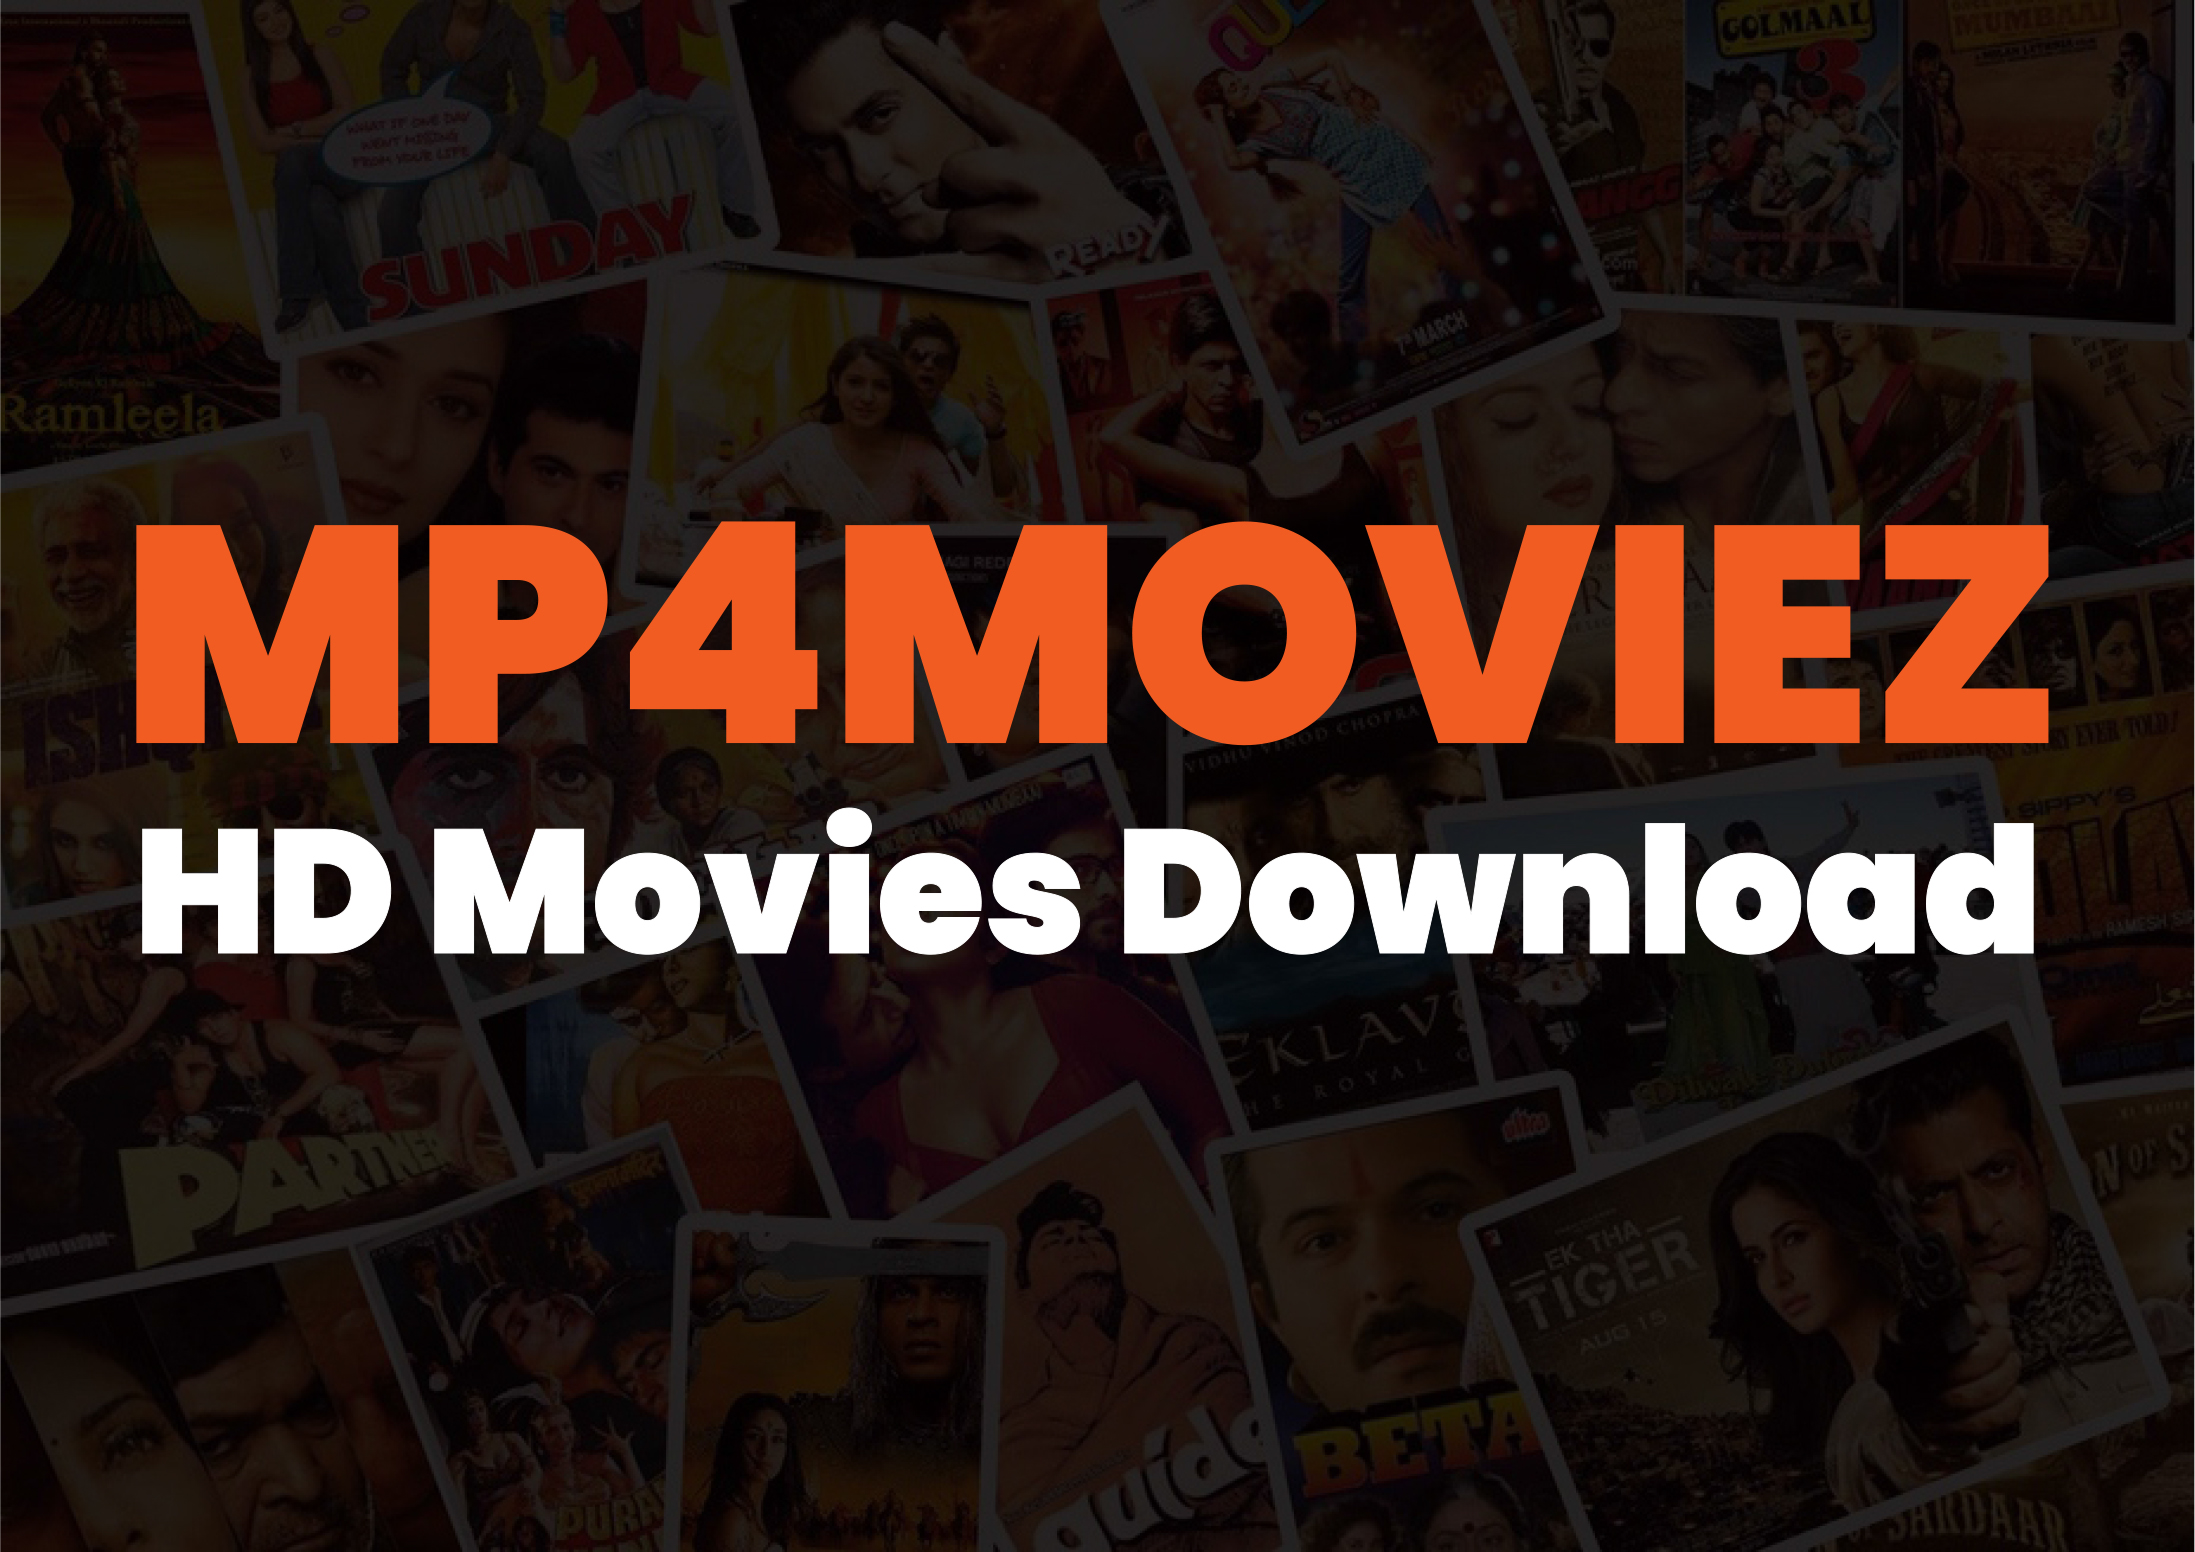 Mp4moviez & Reviews 2019 – Download Latest Bollywood Movies HD